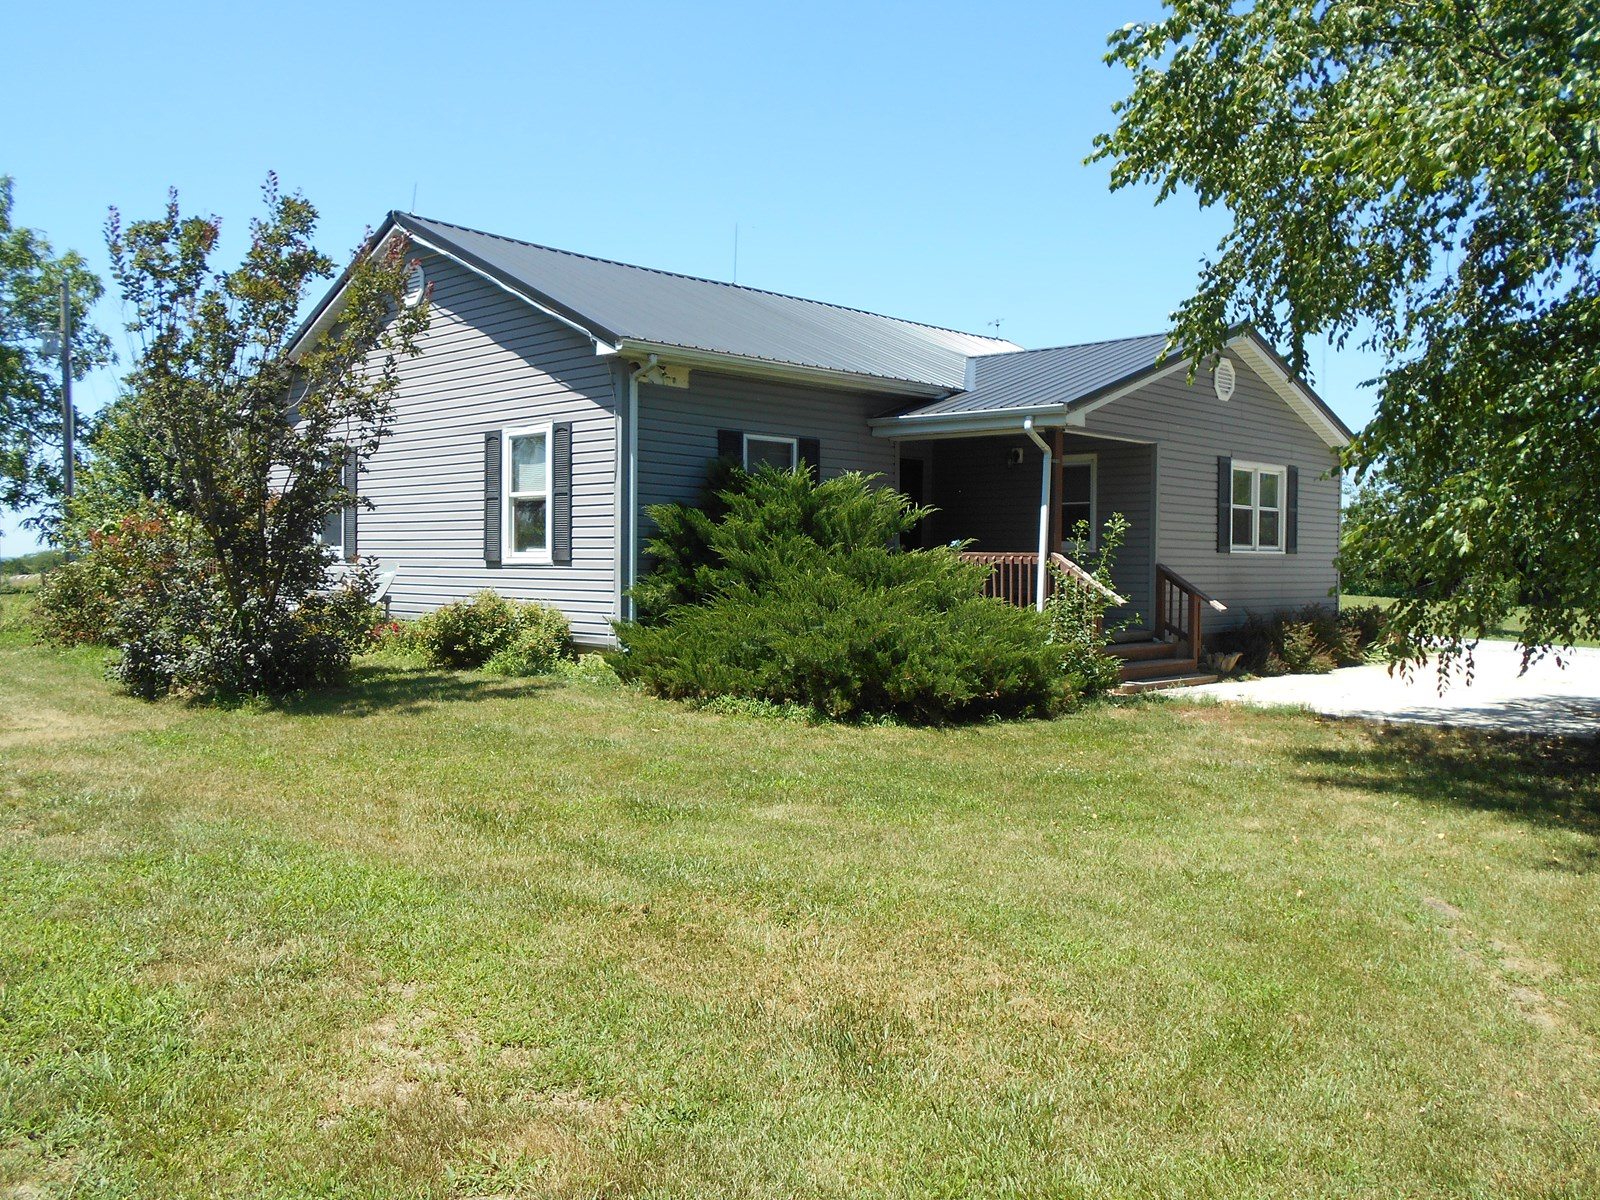 7 ACRES & REMODELED HOME IN WINSTON MO FOR SALE